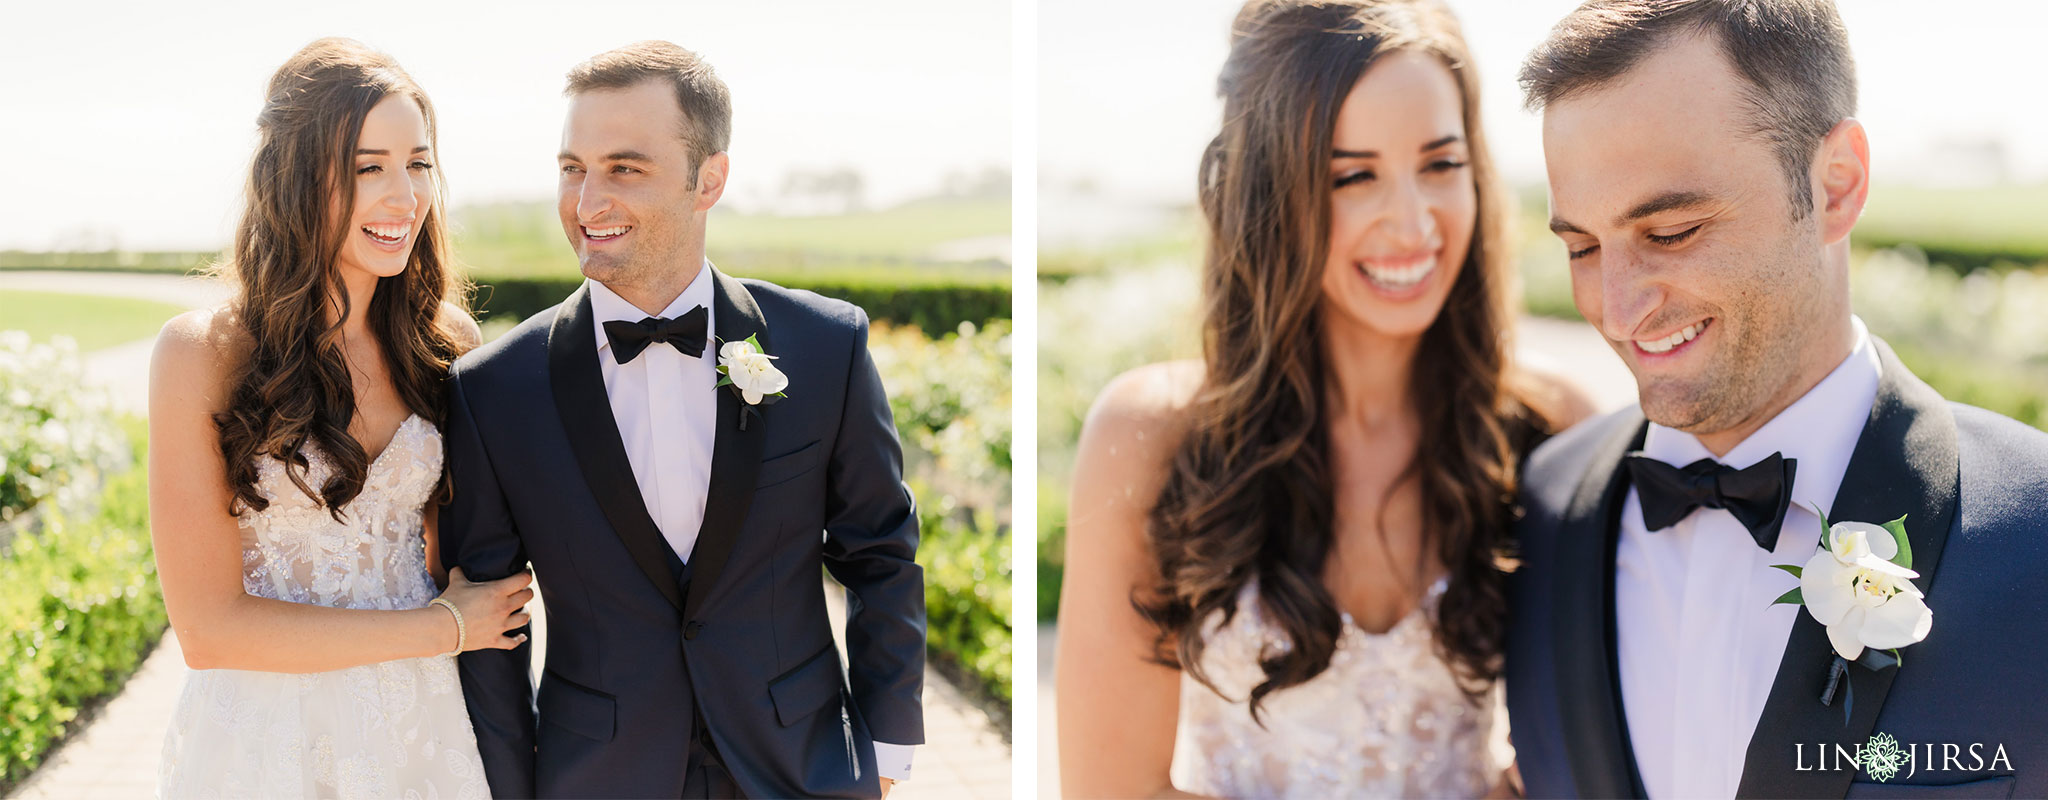 72 pelican hill orange county wedding photography